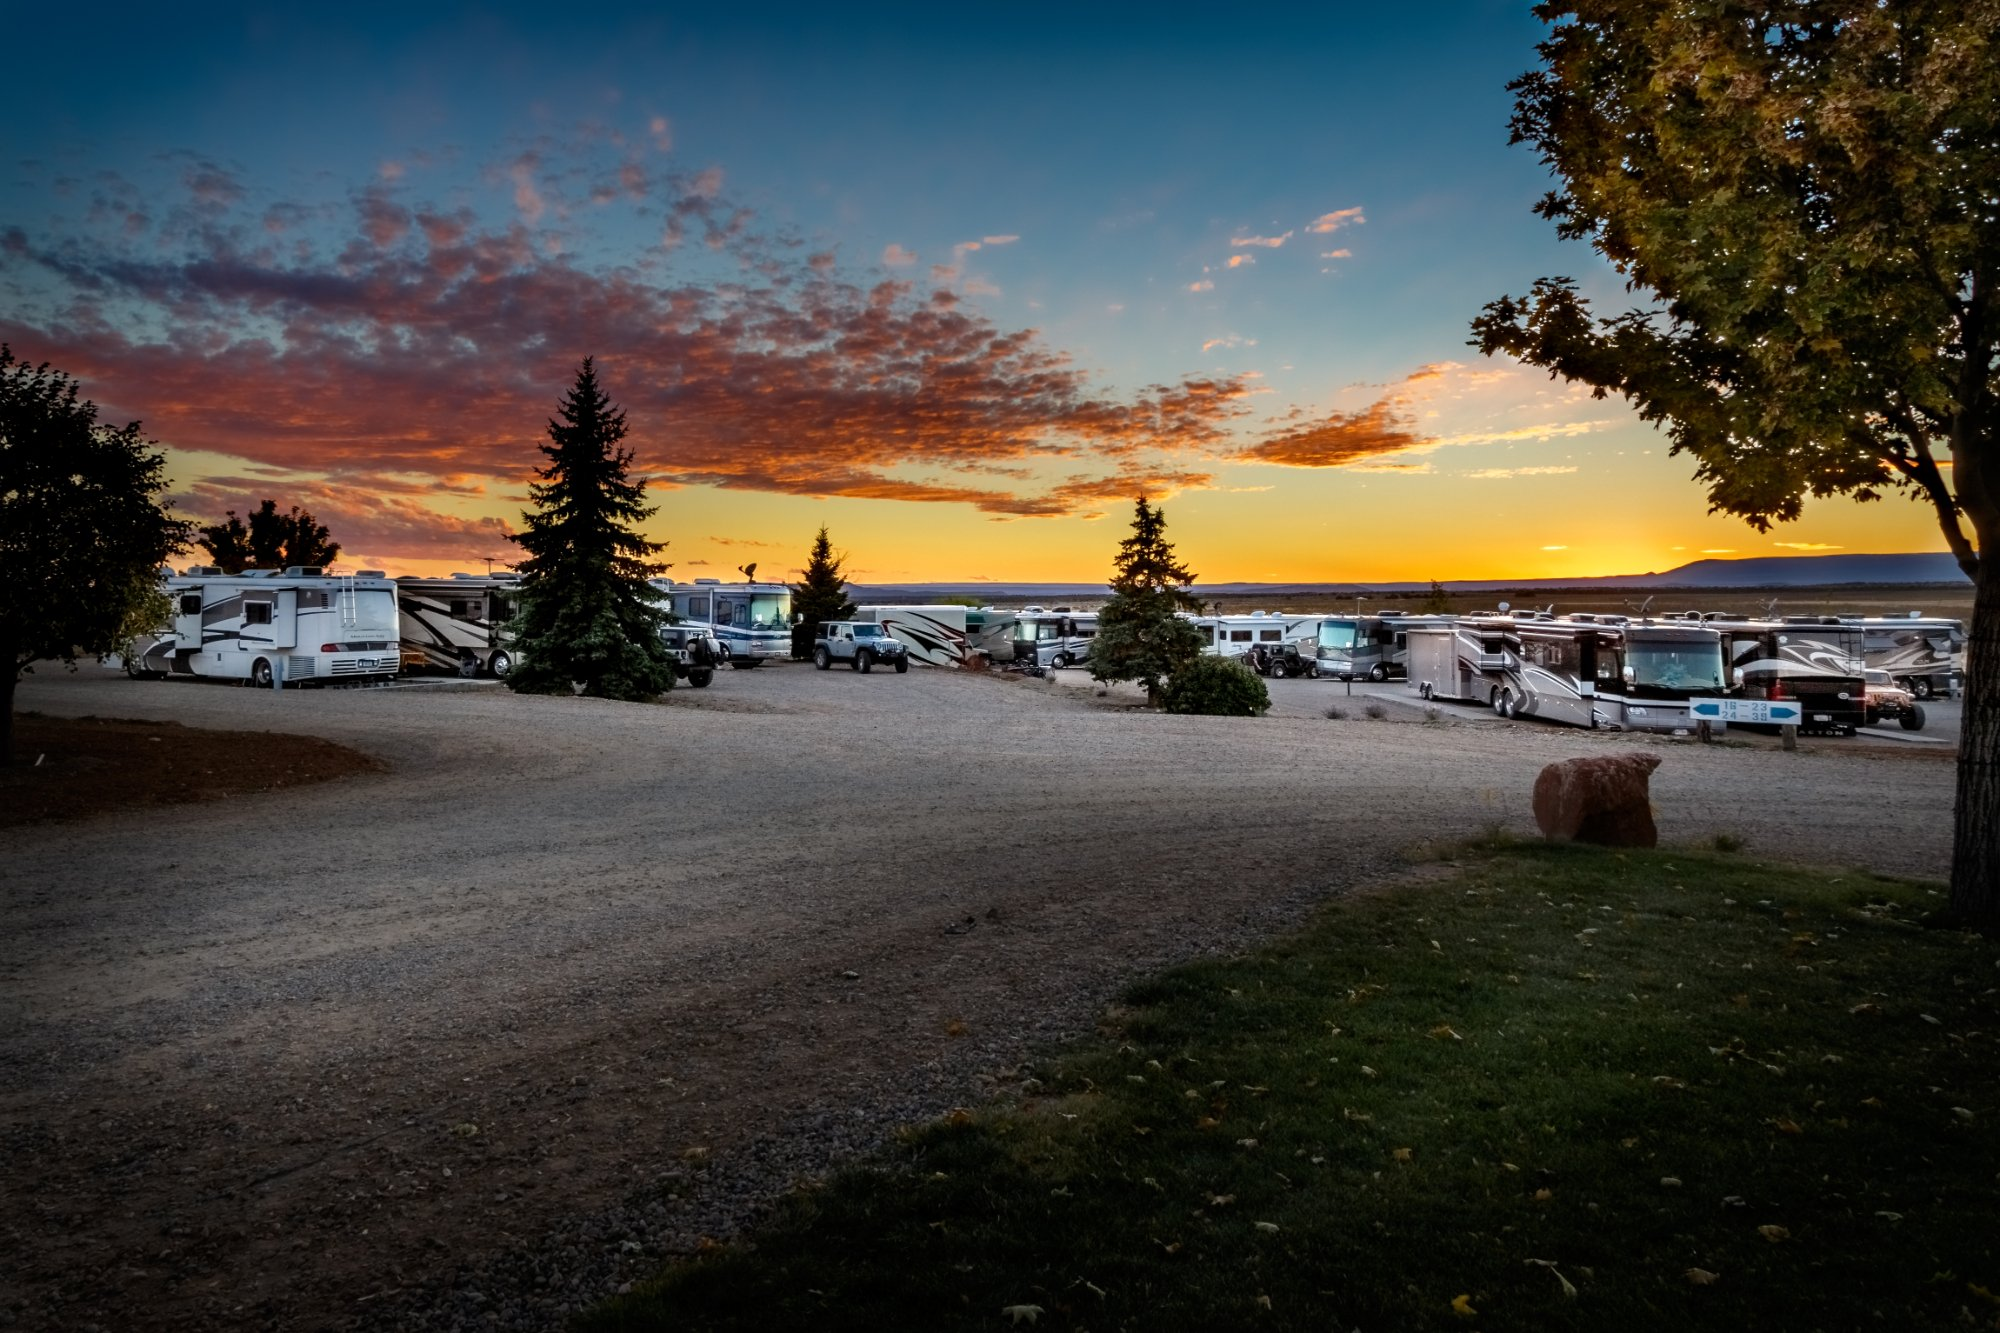 Blue Mountain RV Park